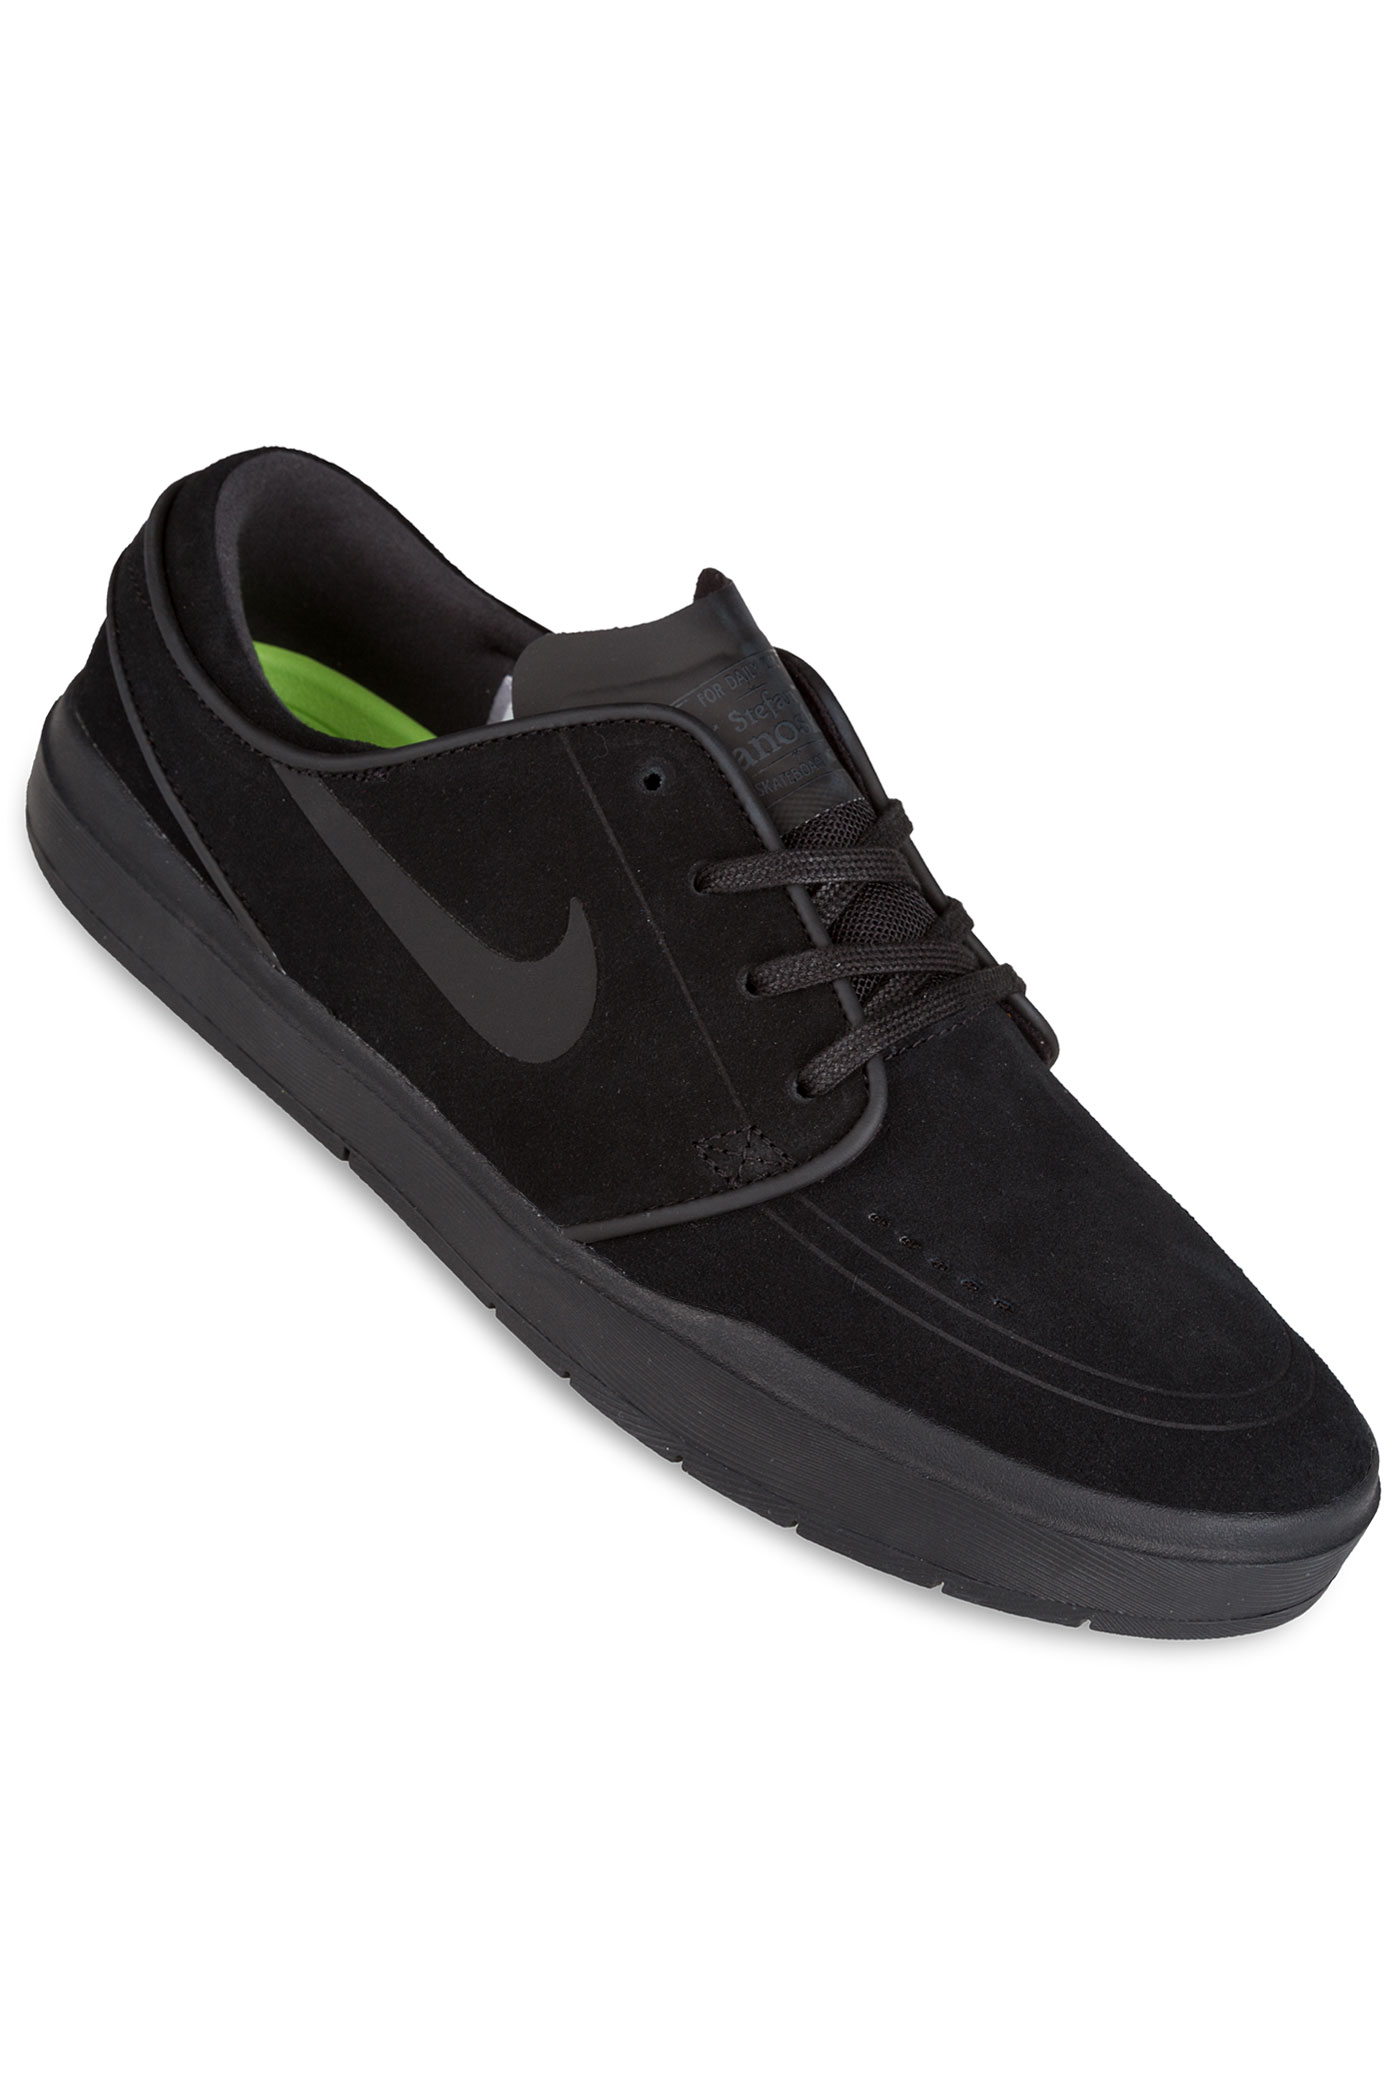 a0a4b2cb85d3 nike sb shoes in malaysia